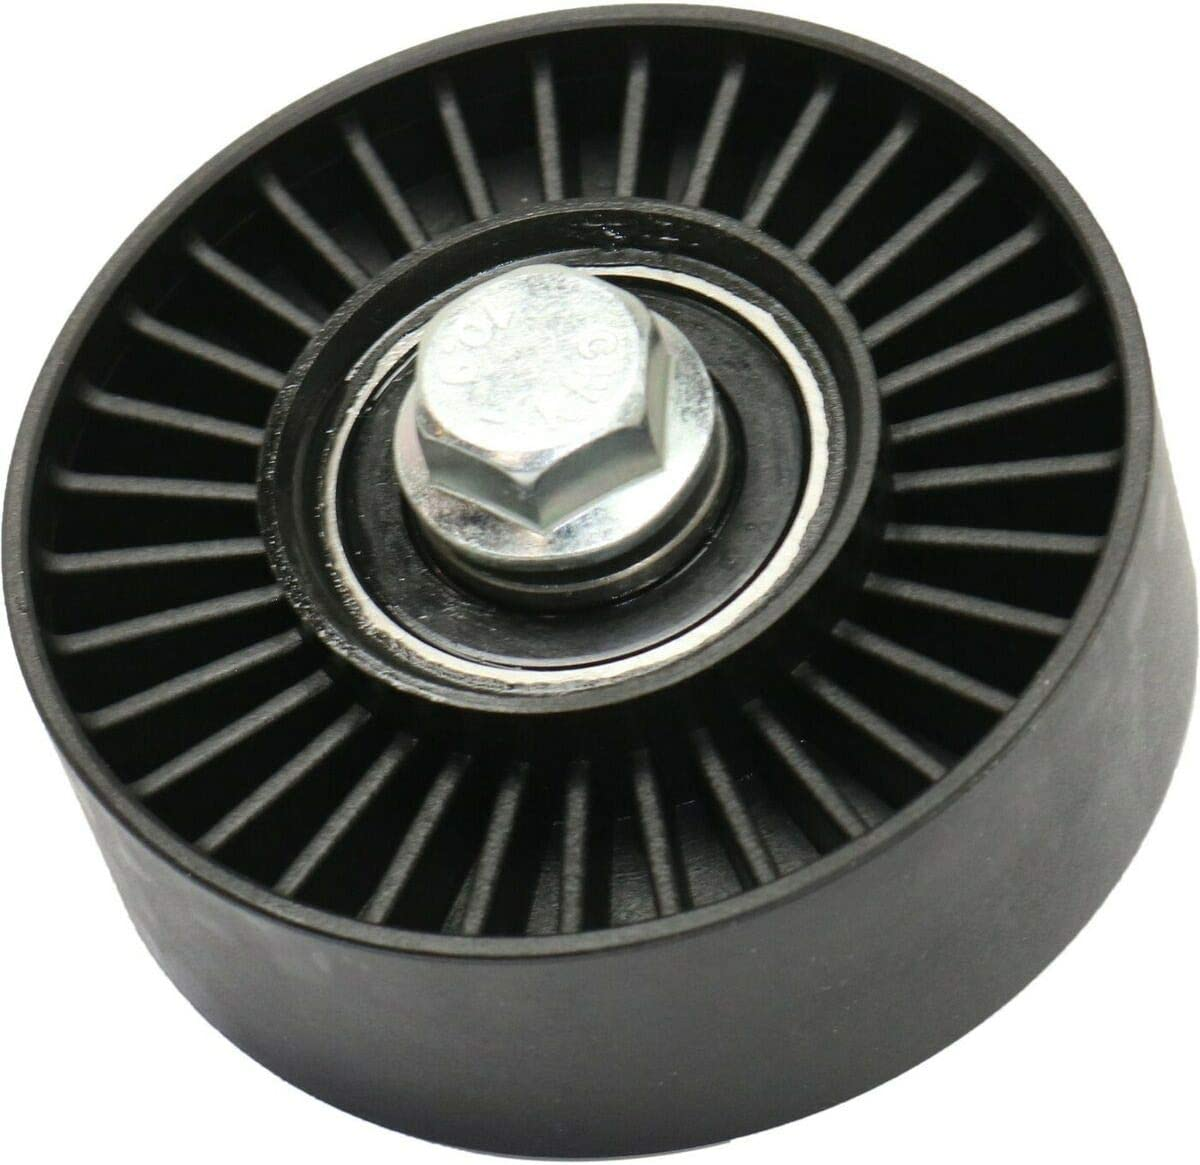 Surprise price Timing Belt Idler Pulley 525 325 Compatible Max 44% OFF 528 330 323 530 328